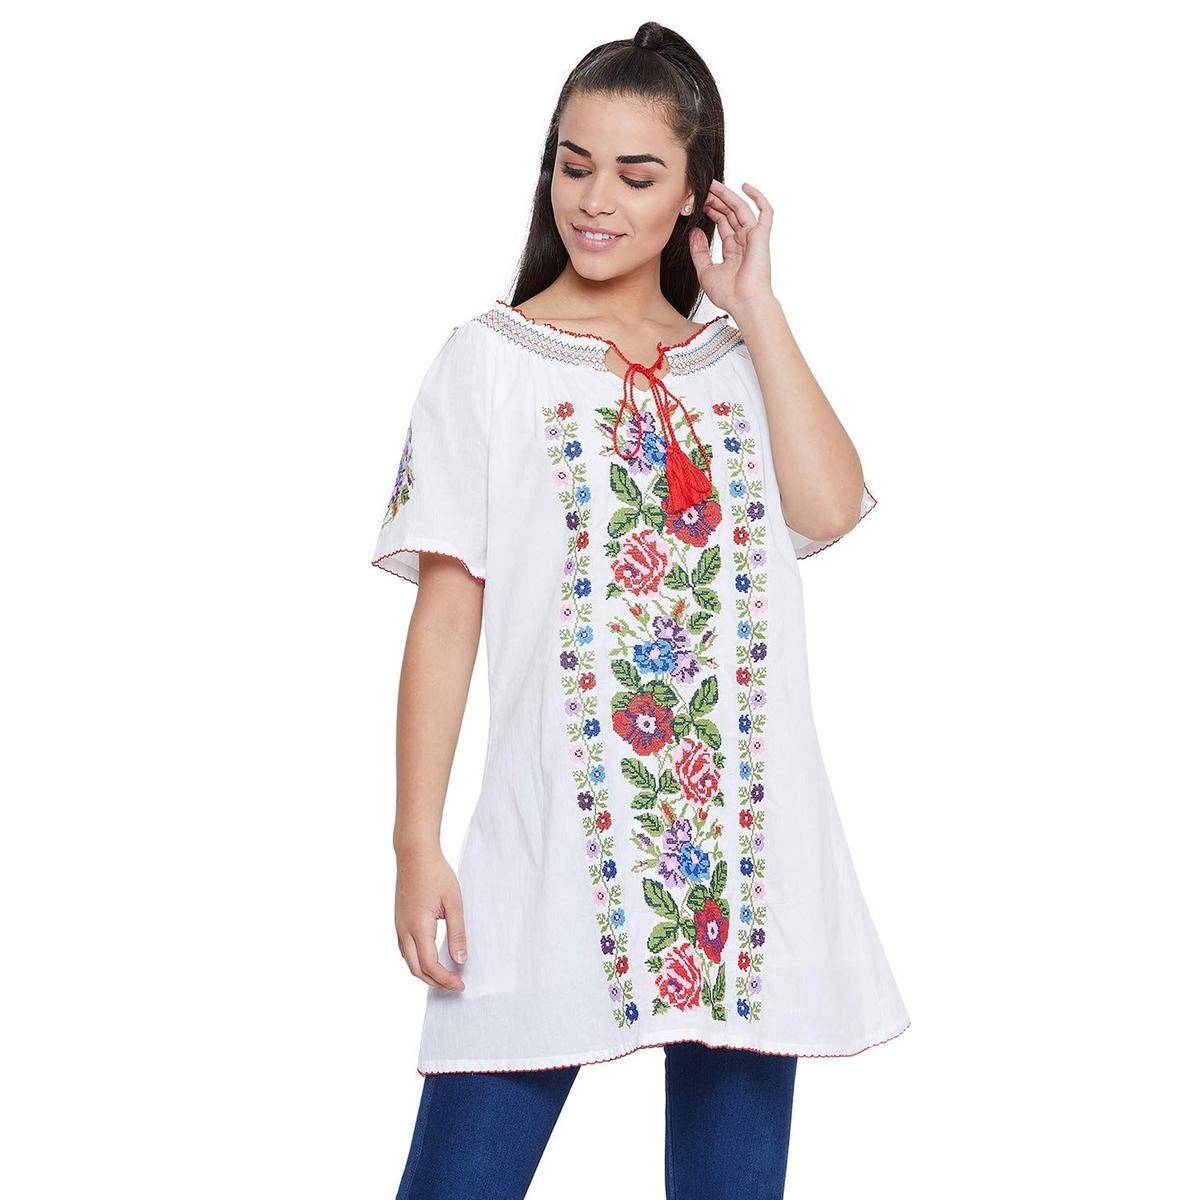 Toshee - Women's White Color Embroidered Off Shoulder Cotton Tunic